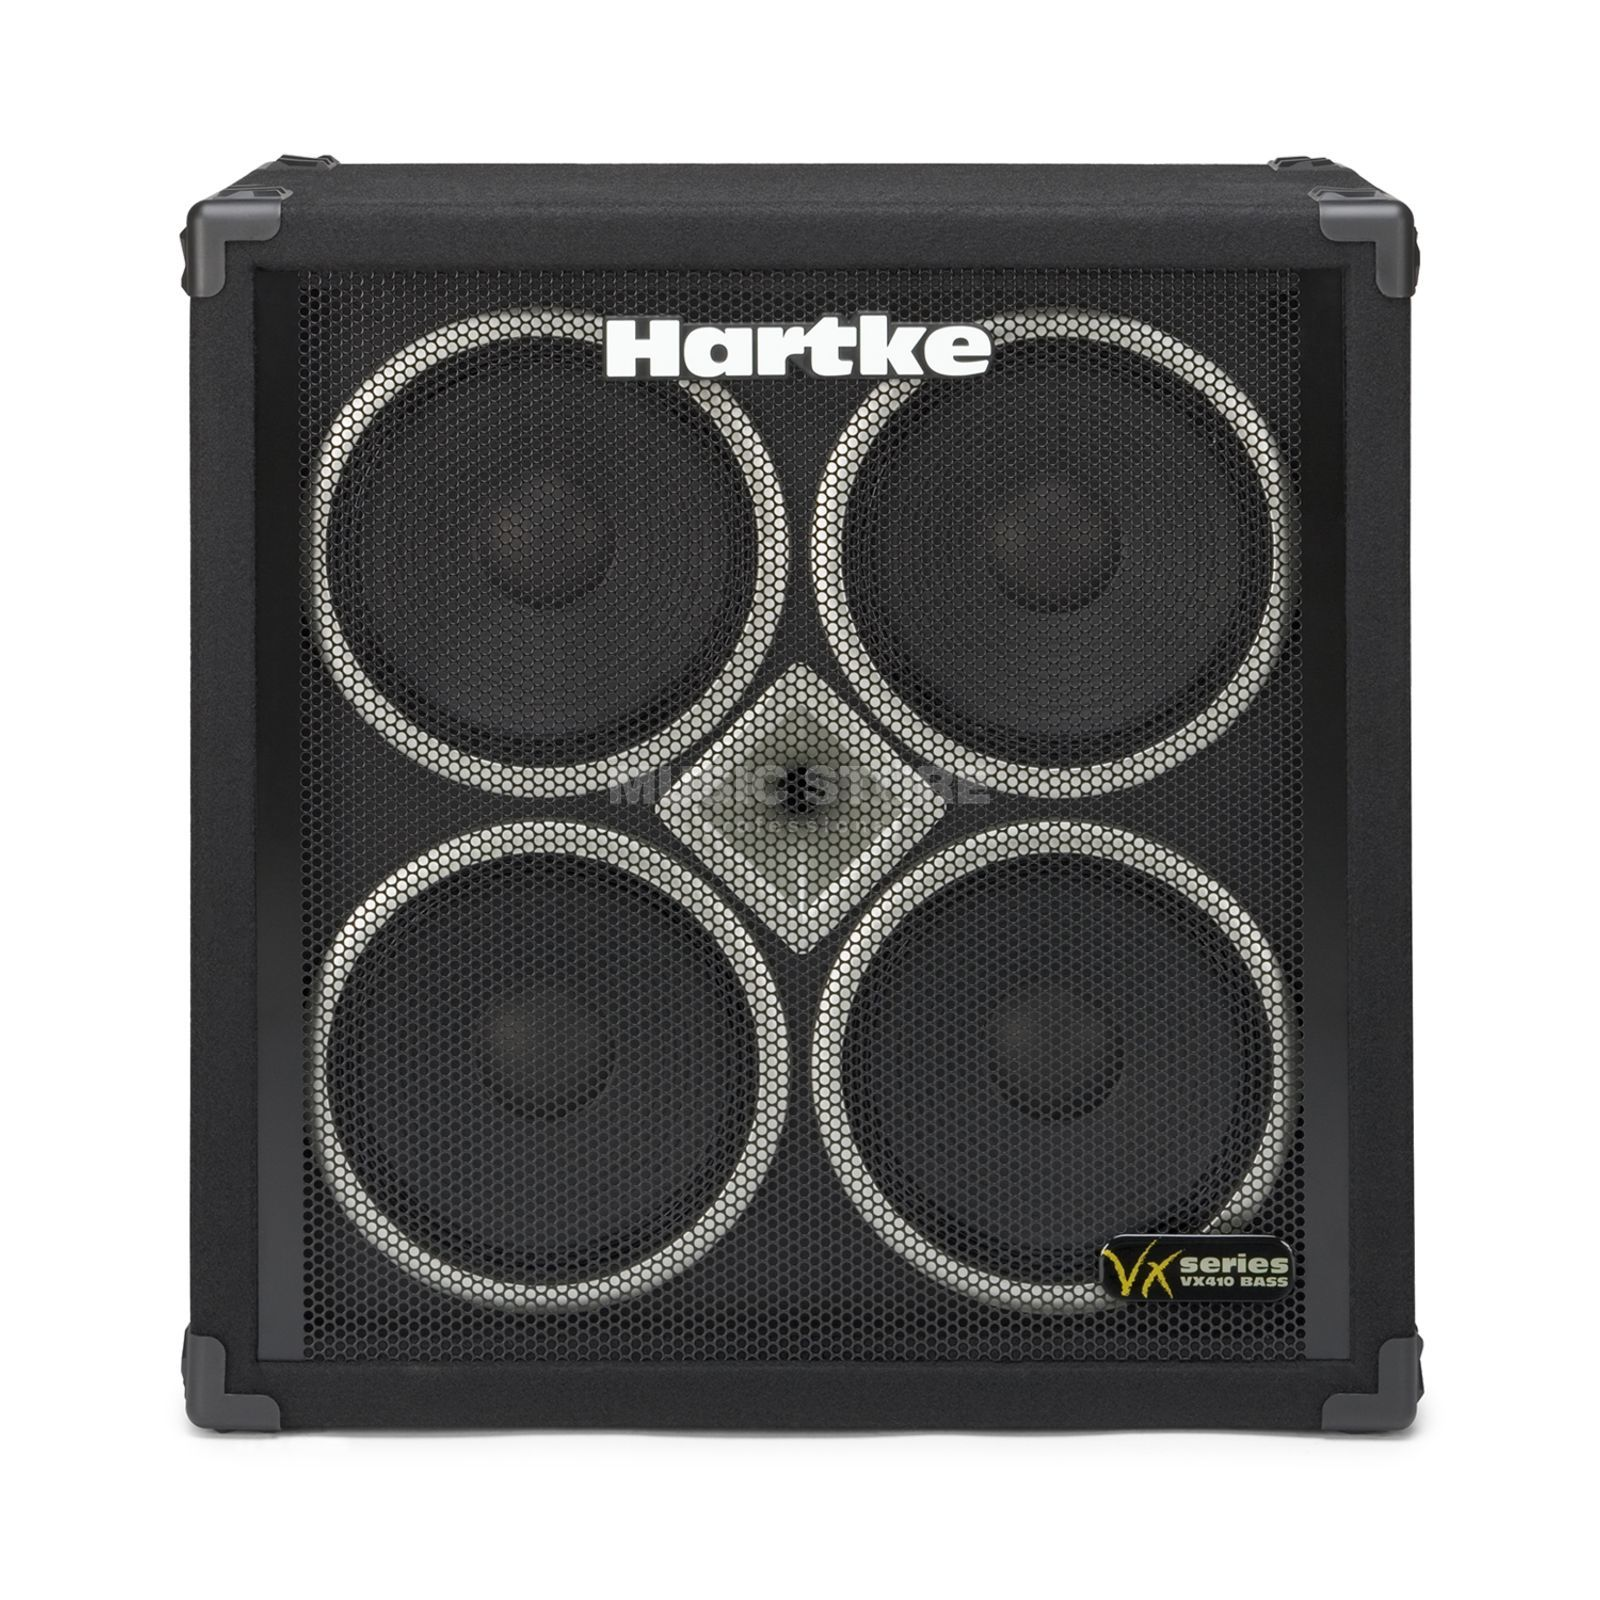 "Hartke VX 410 Bass Box 400 Watt 8 Ohm 4x10""Speaker +  Horn Product Image"